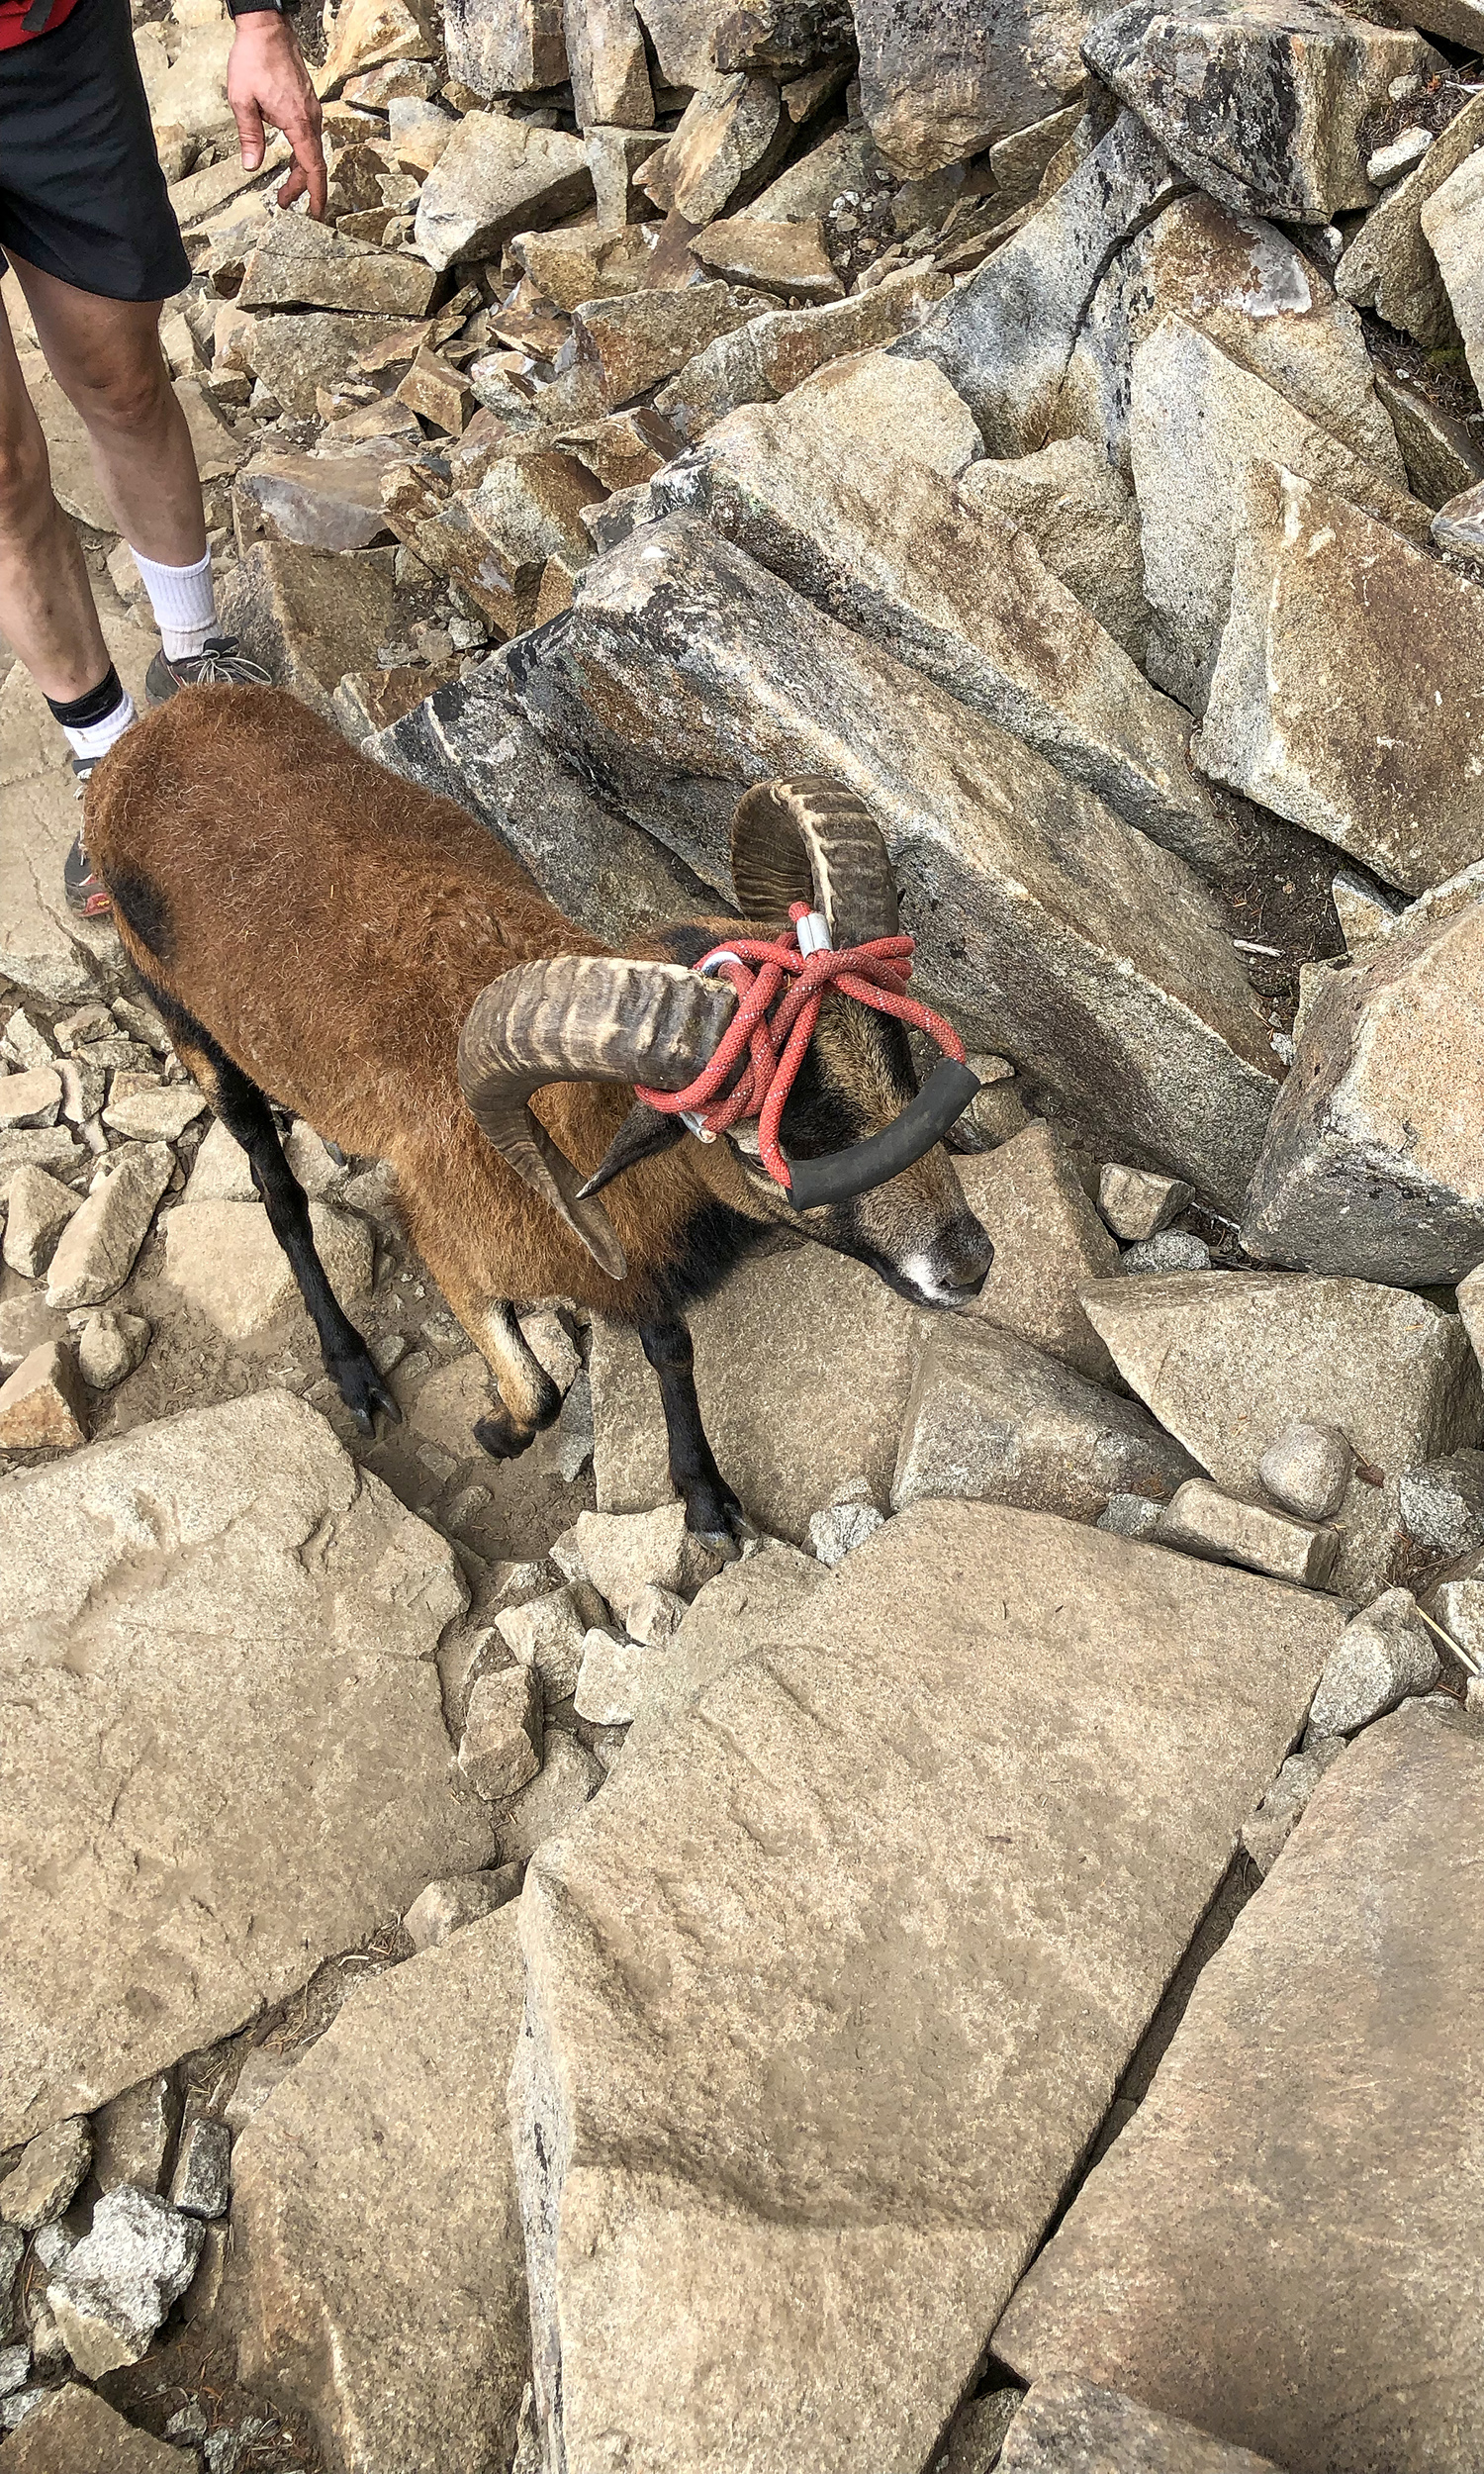 <p>A domesticated ram makes the boulder field look easy. While leashed dogs are allowed on the trail, it's not recommended due to a lack of water and strenuous trail conditions. (Image:{&nbsp;}Rachael A. Jones / Seattle Refined){&nbsp;}</p>